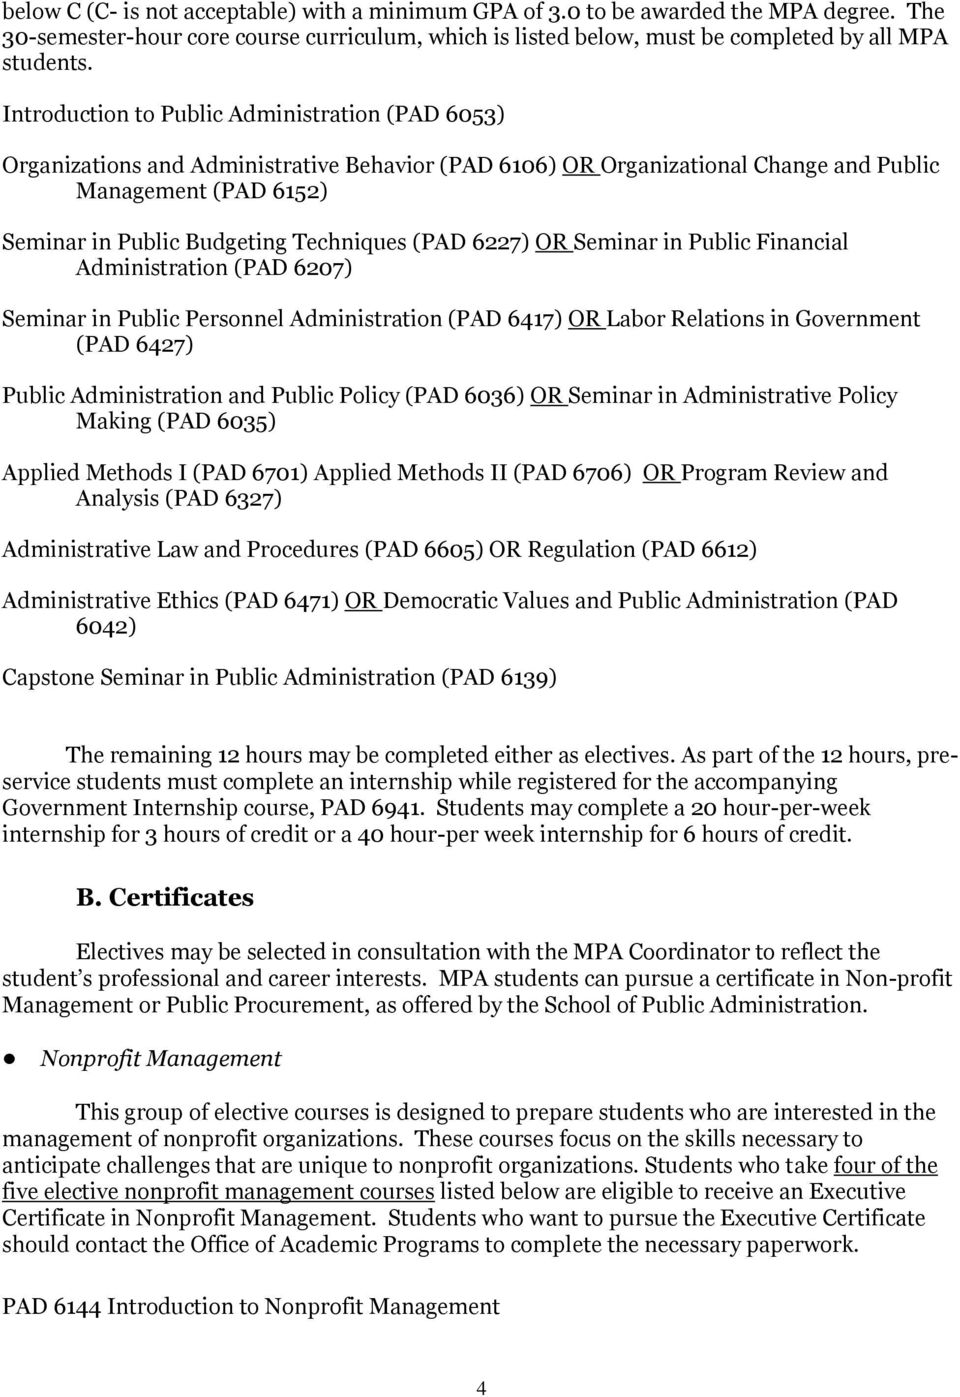 (PAD 6227) OR Seminar in Public Financial Administration (PAD 6207) Seminar in Public Personnel Administration (PAD 6417) OR Labor Relations in Government (PAD 6427) Public Administration and Public